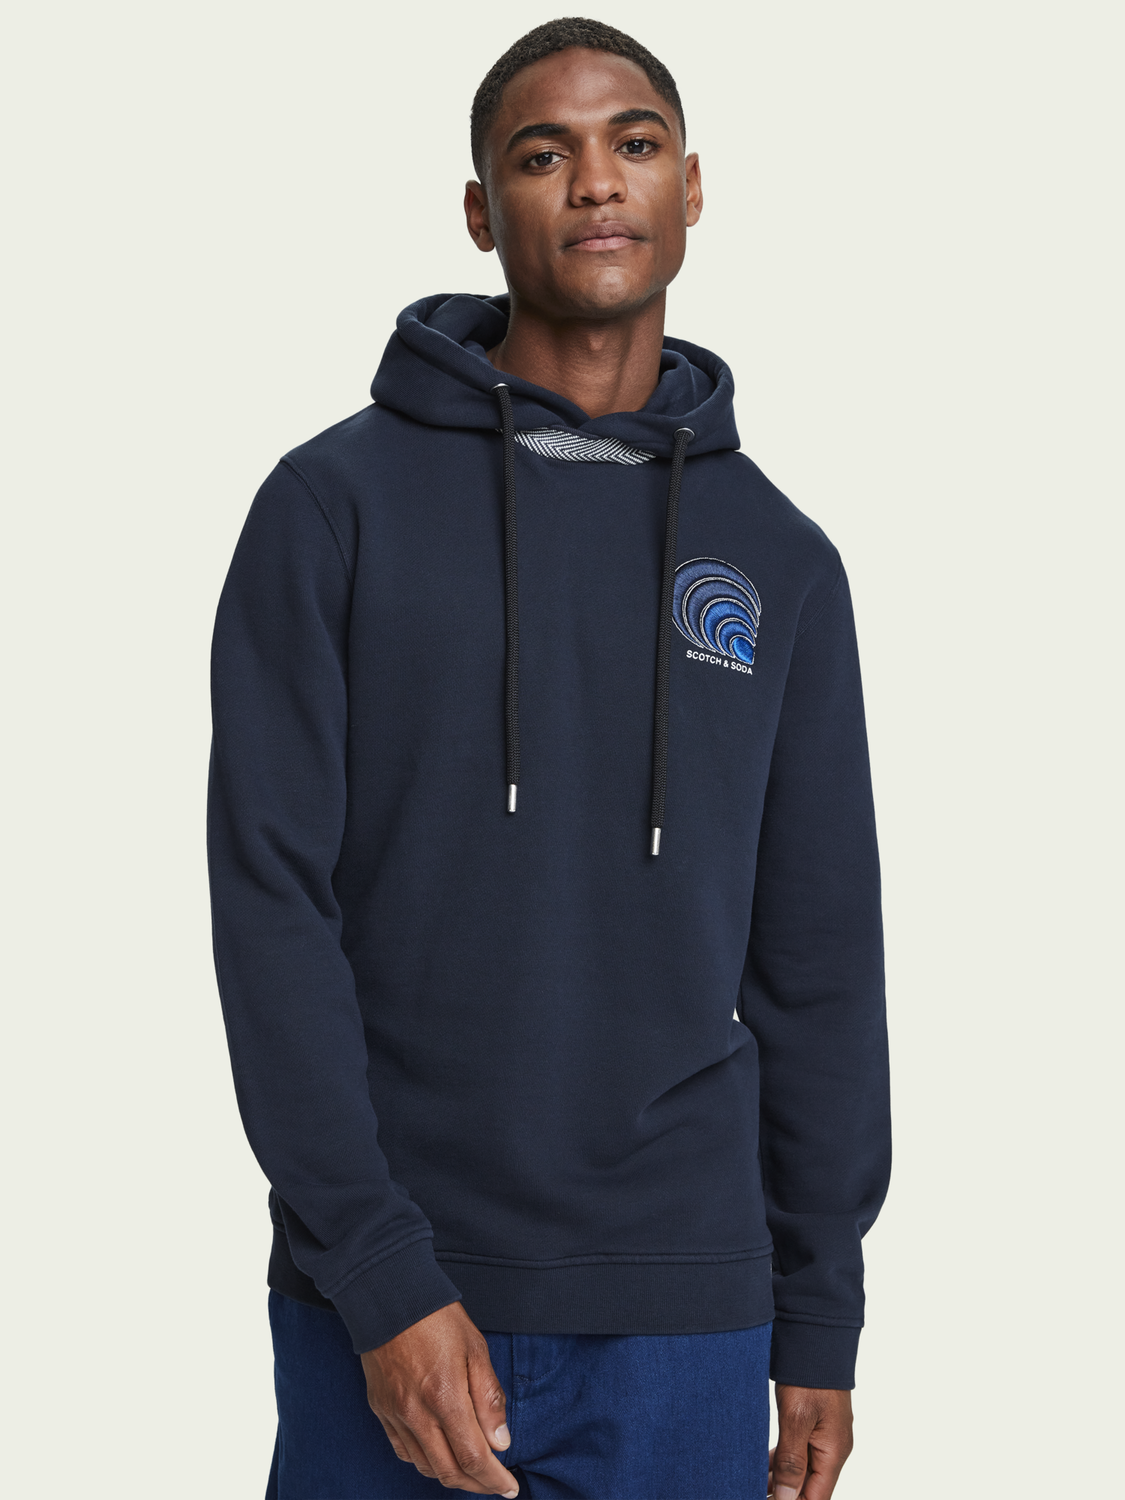 Men 100% cotton embroidered branded hoodie